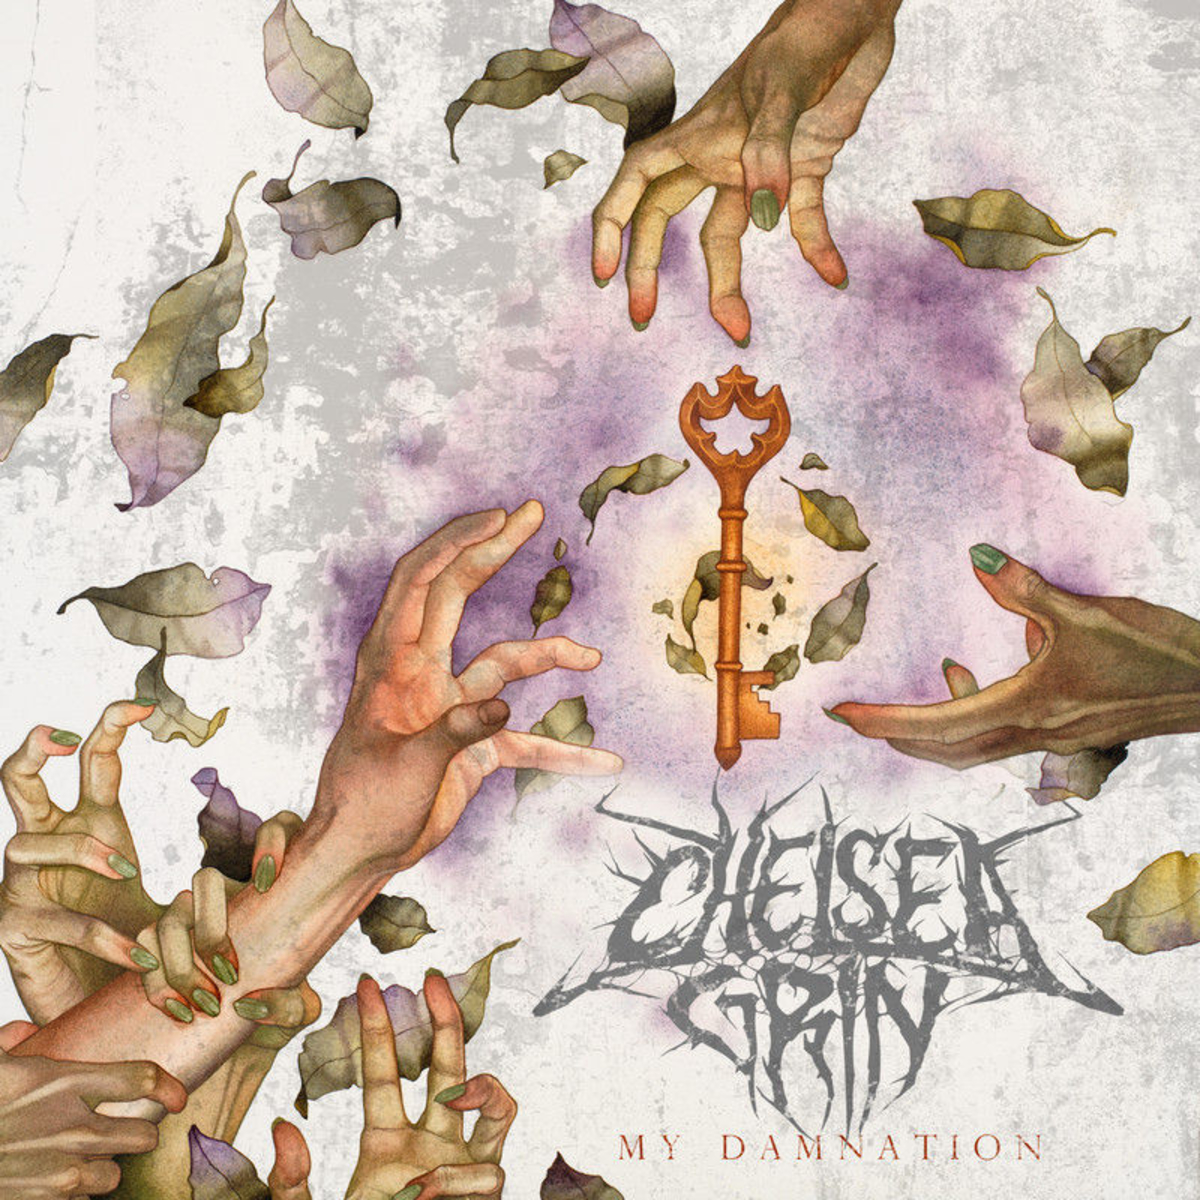 Chelsea Grin - My Damnation (2011)